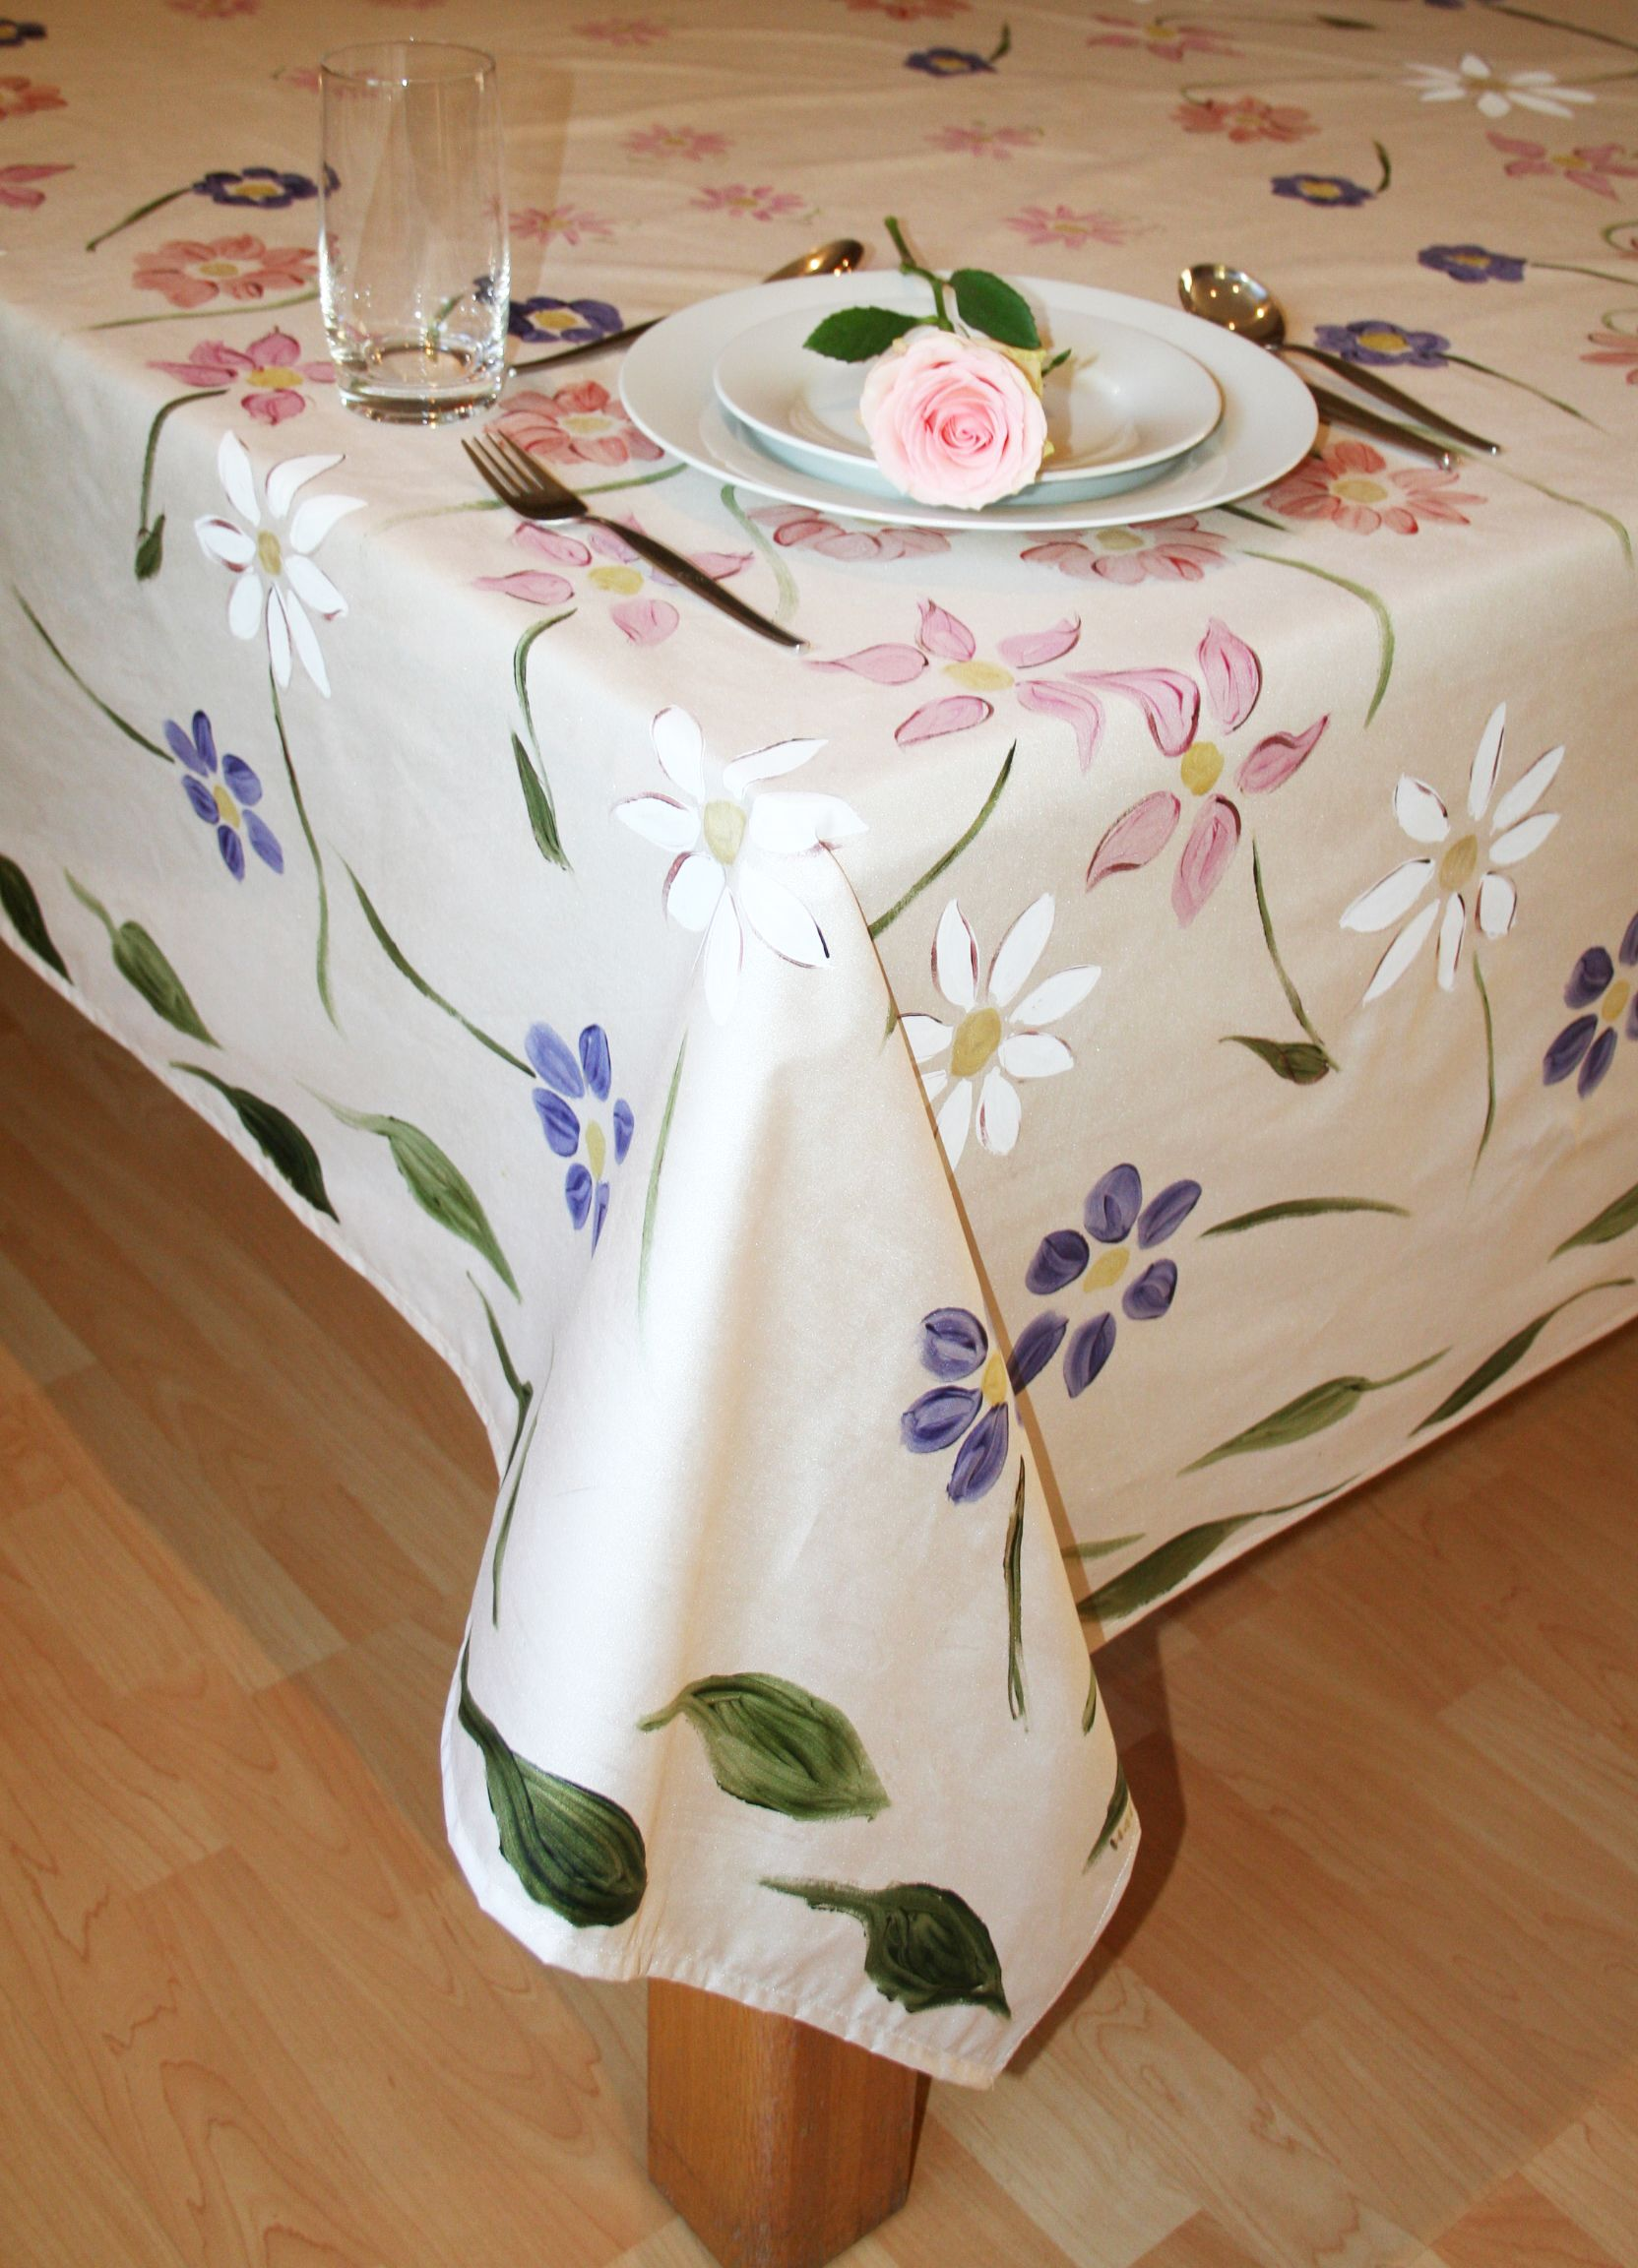 Table Painting Designs African Inspired Hand Painted Tablecloths These Designs